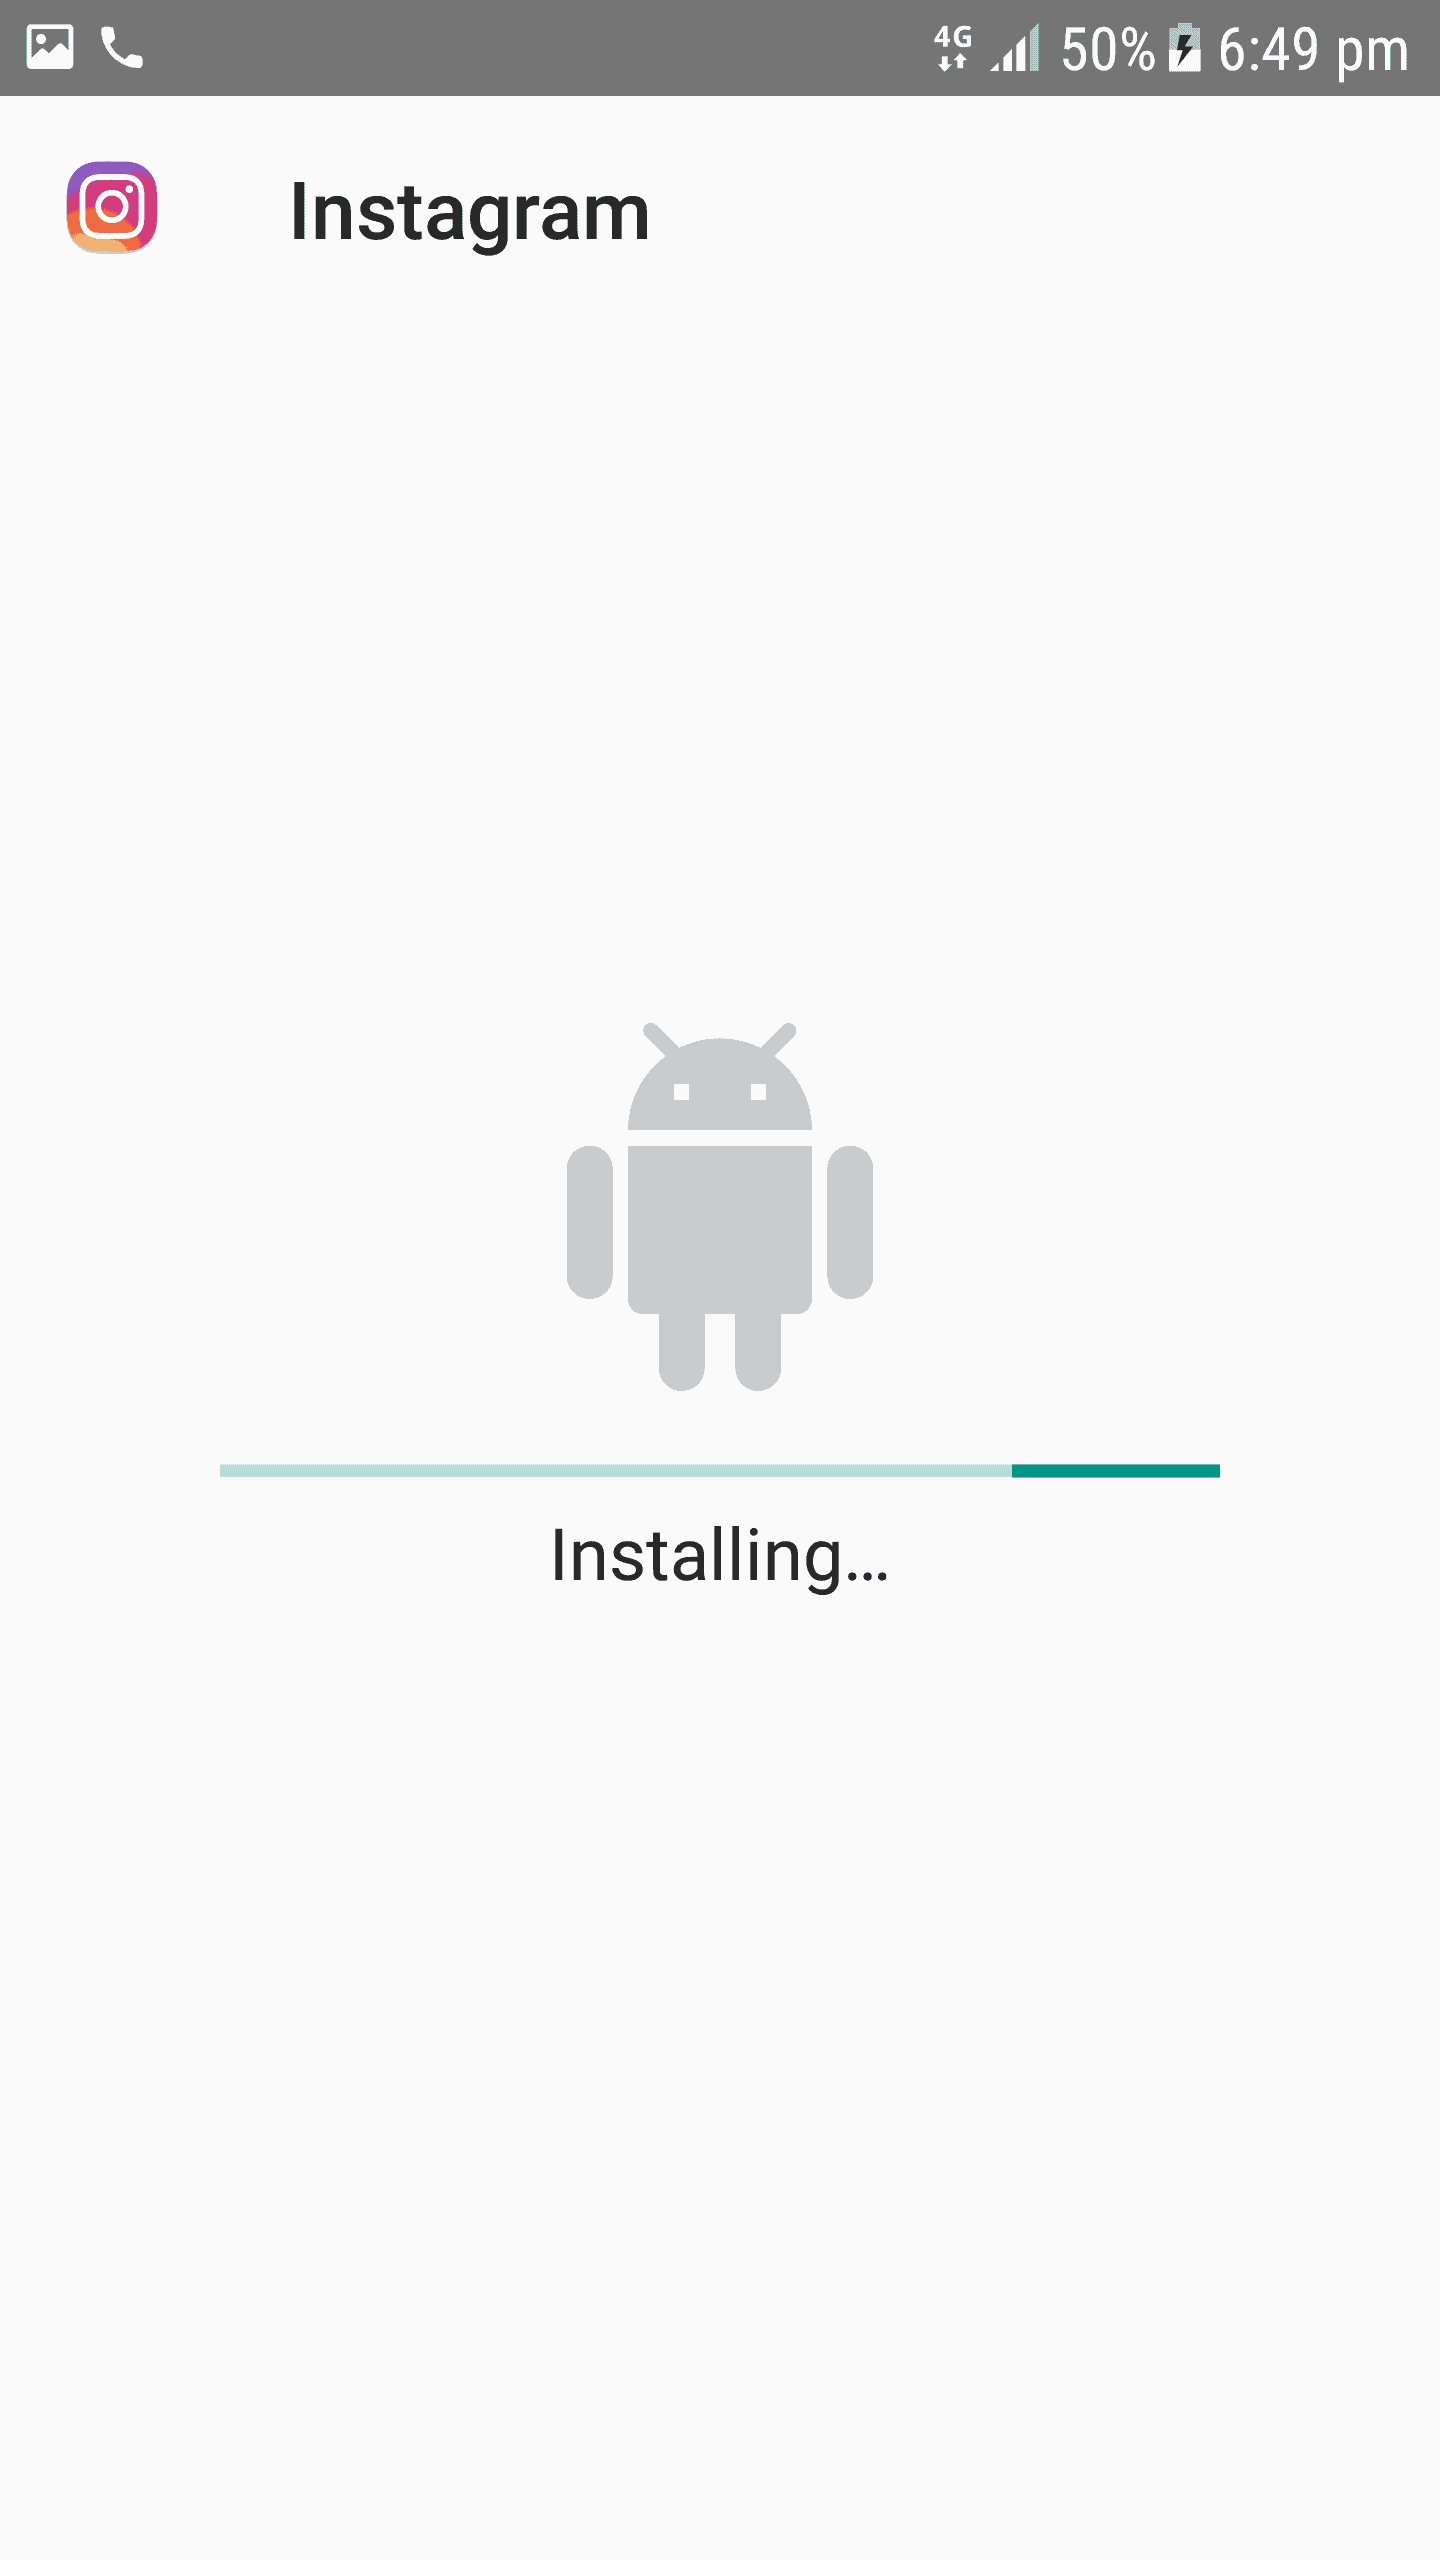 InstaULTRA APK Download Latest Version 0 9 2 10- 2019 | Android Jungles